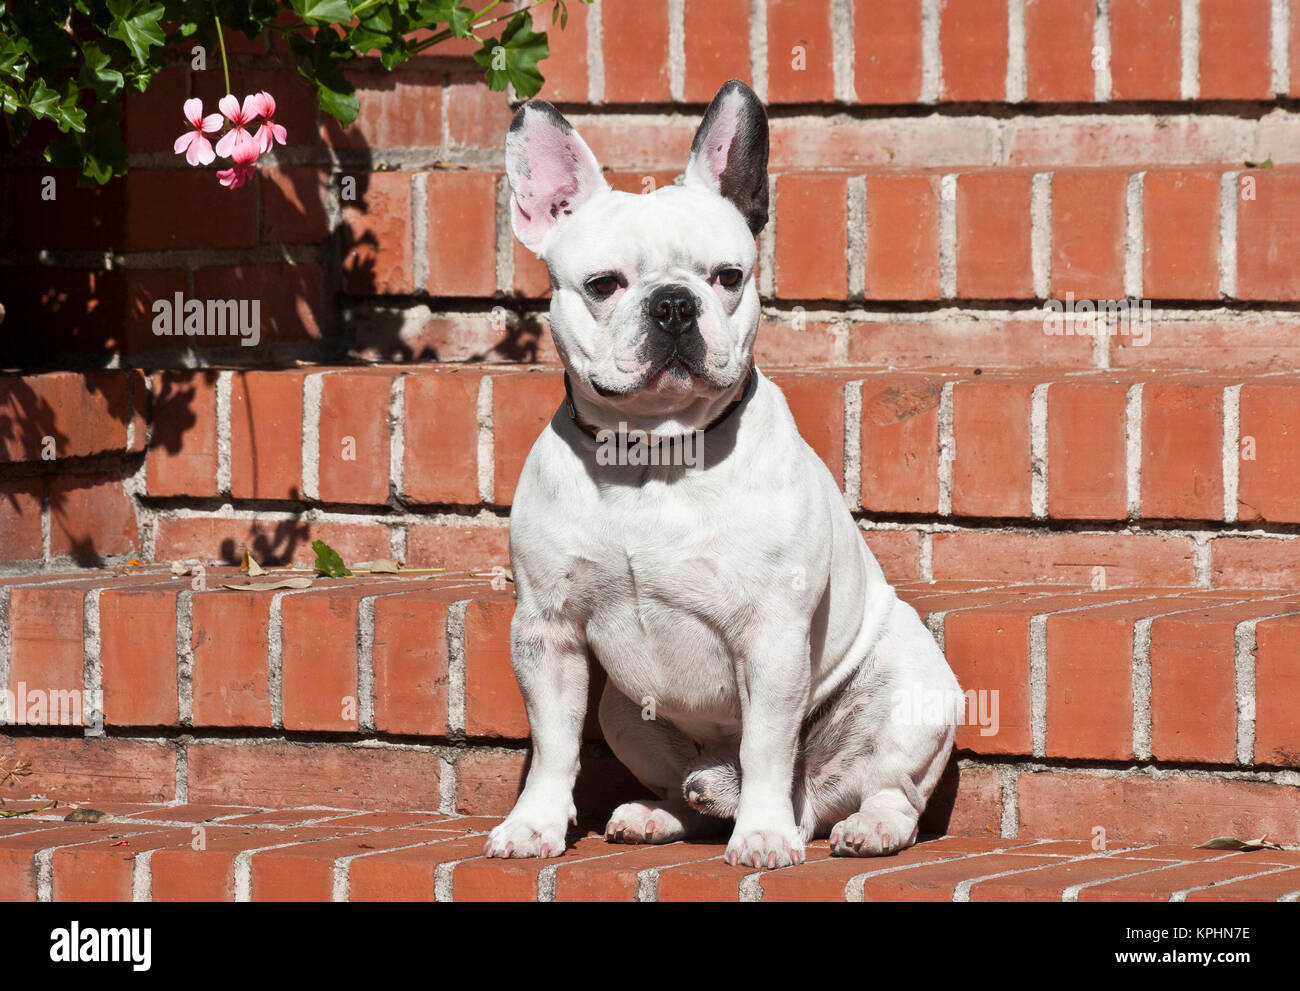 A French Bulldog sitting on a red brick stairway. - Stock Image